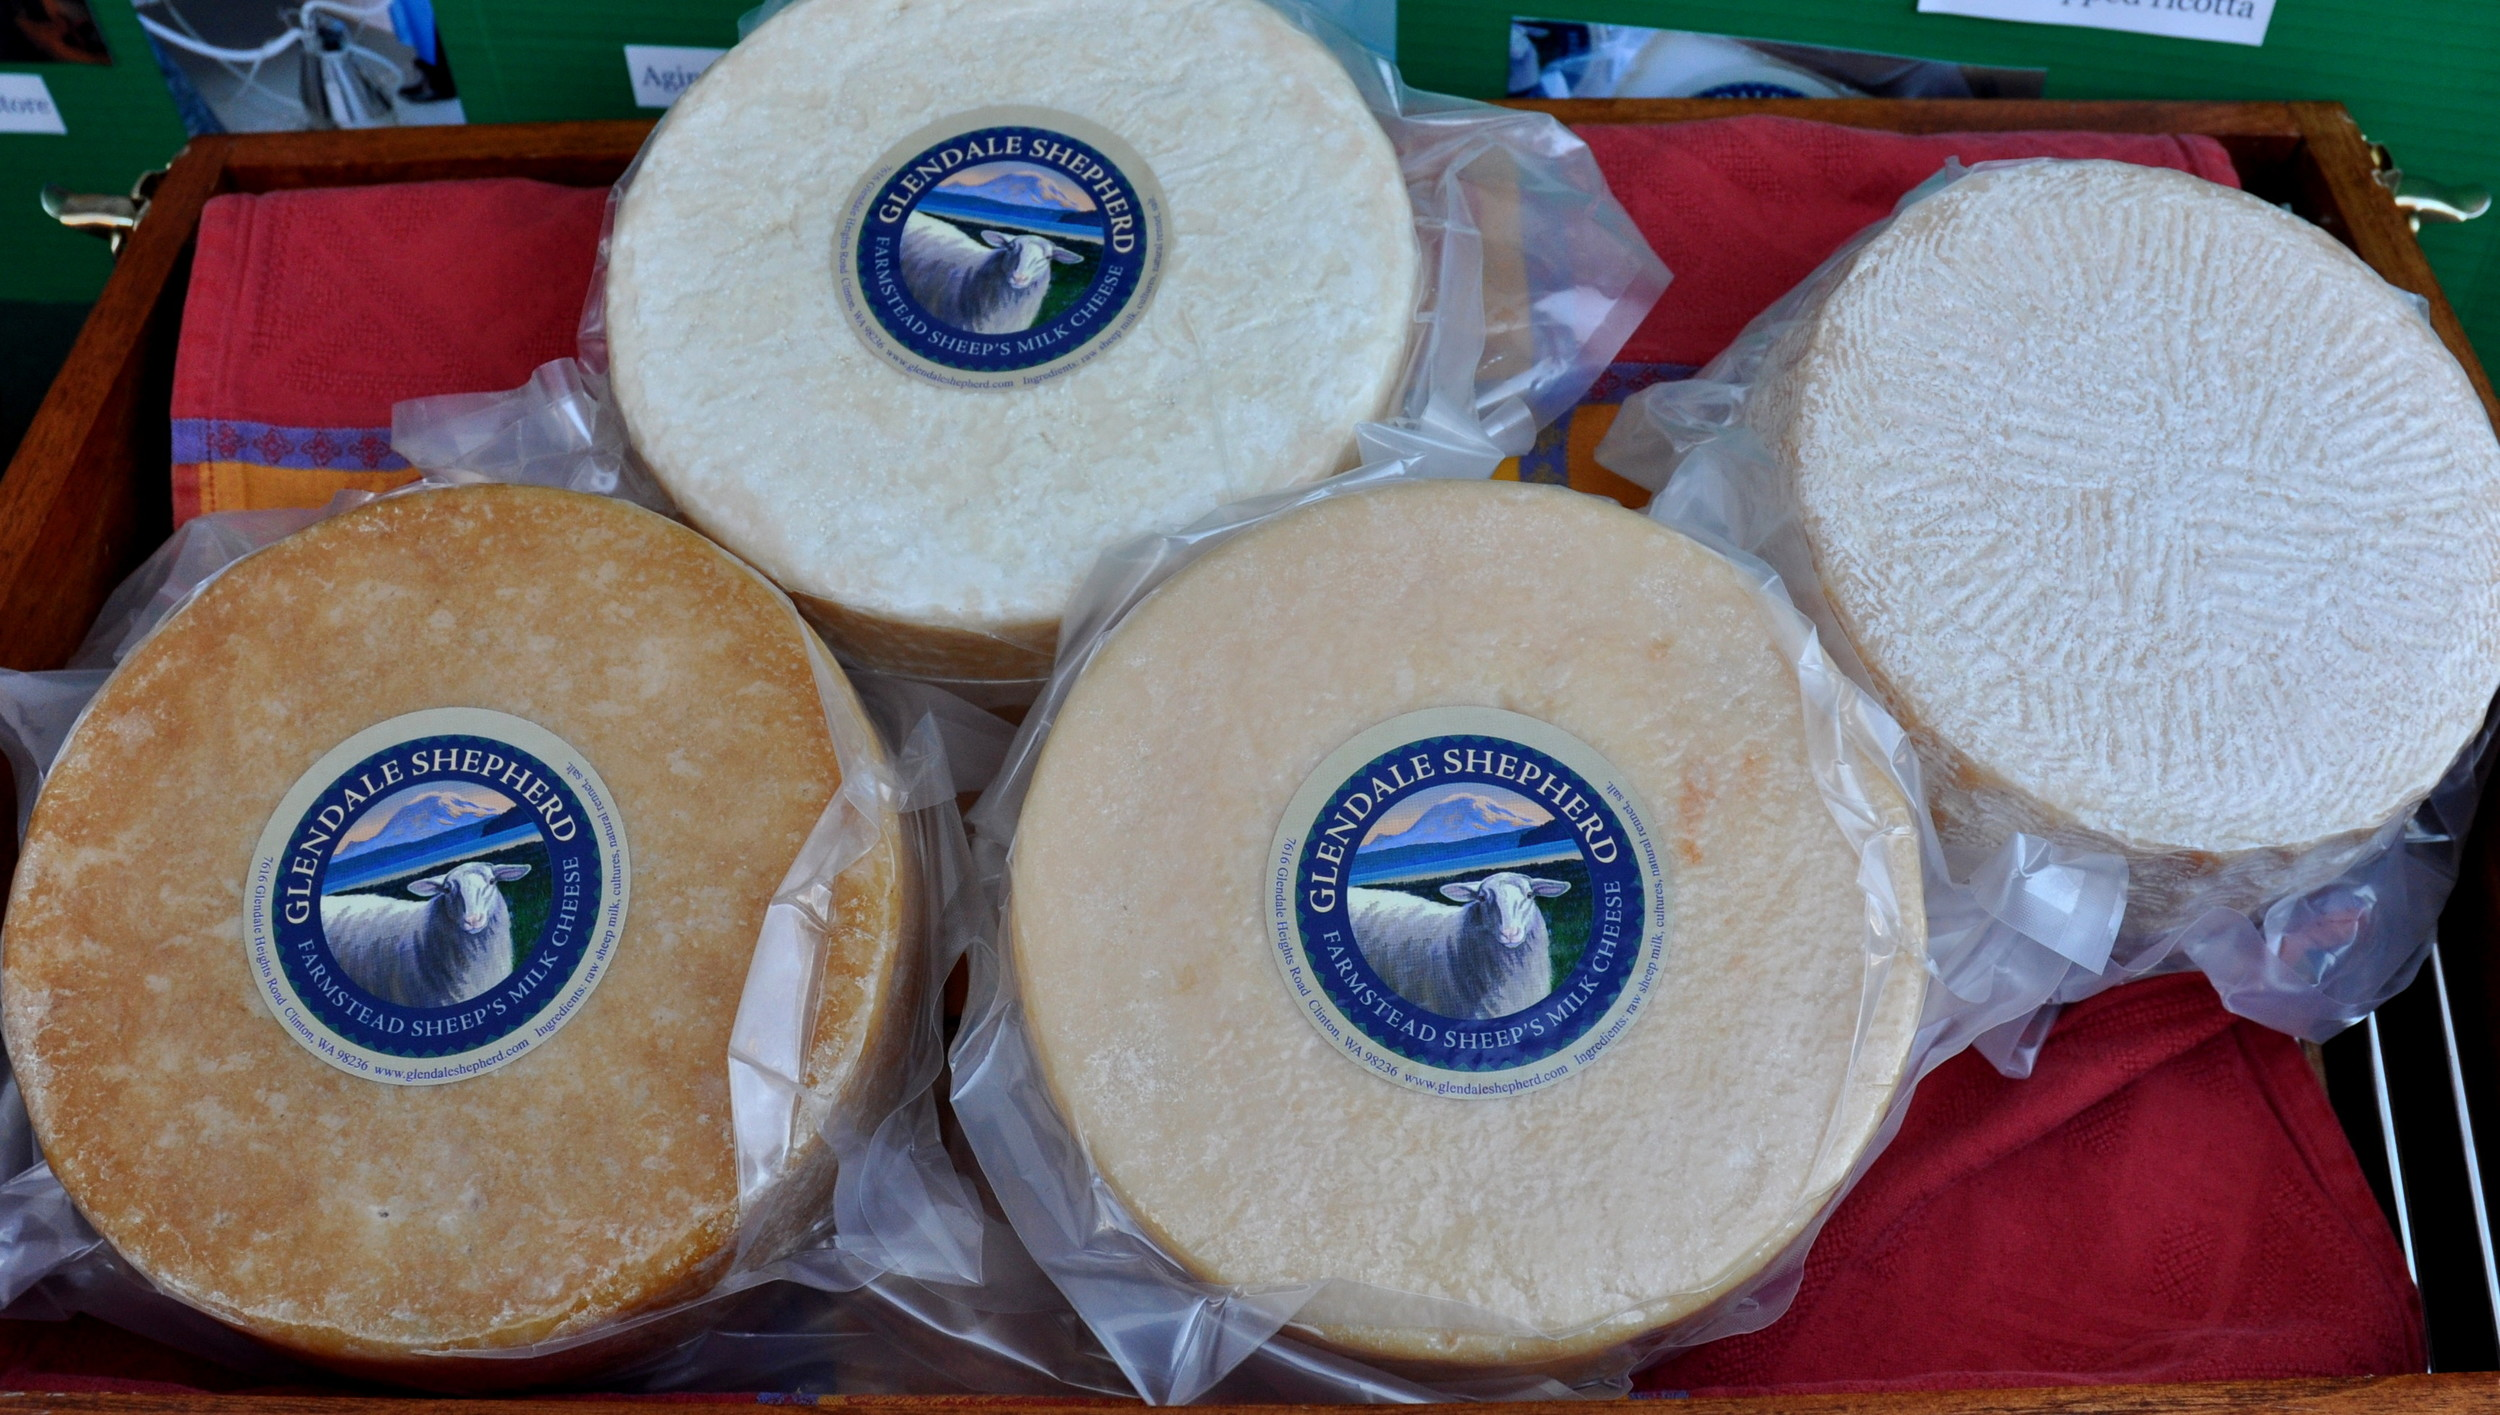 Aged sheep cheeses from Glendale Shepherd. Photo copyright 2014 by Zachary D. Lyons.